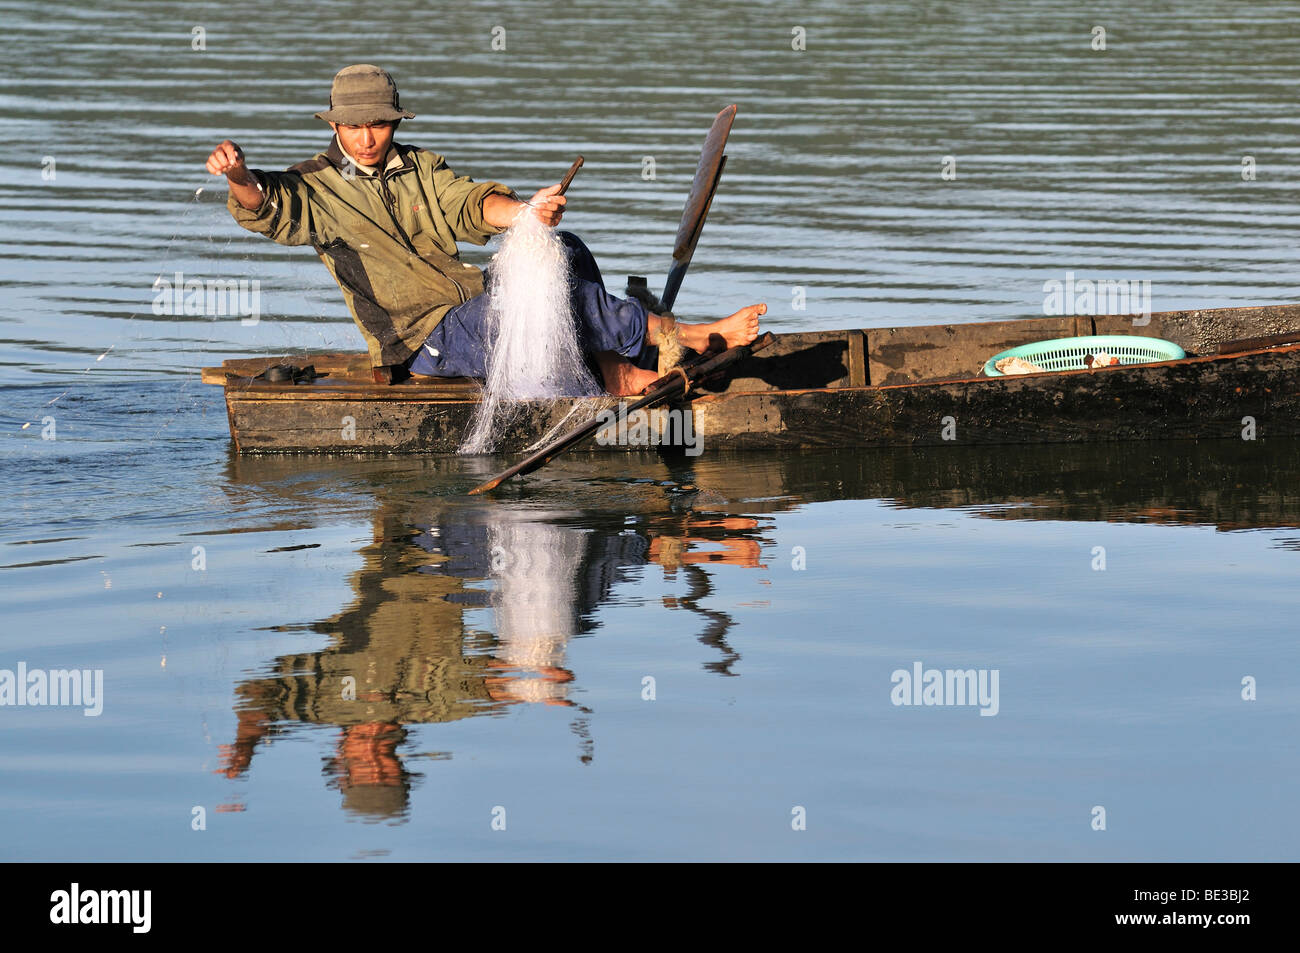 Fishermen in a wooden boat pulls out a net on Tuyen Lam lake, Dalat, Central Highlands, Vietnam, Asia - Stock Image